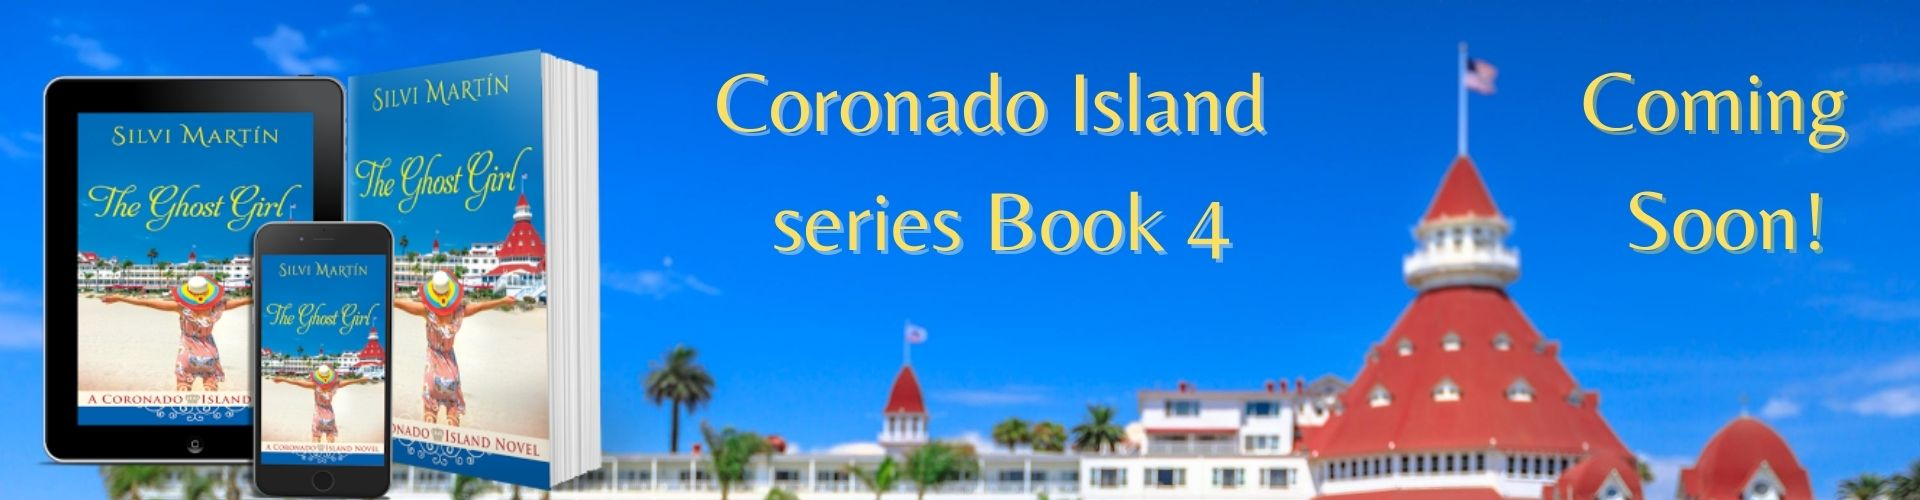 Book 4 Coronado Island series coming soon!